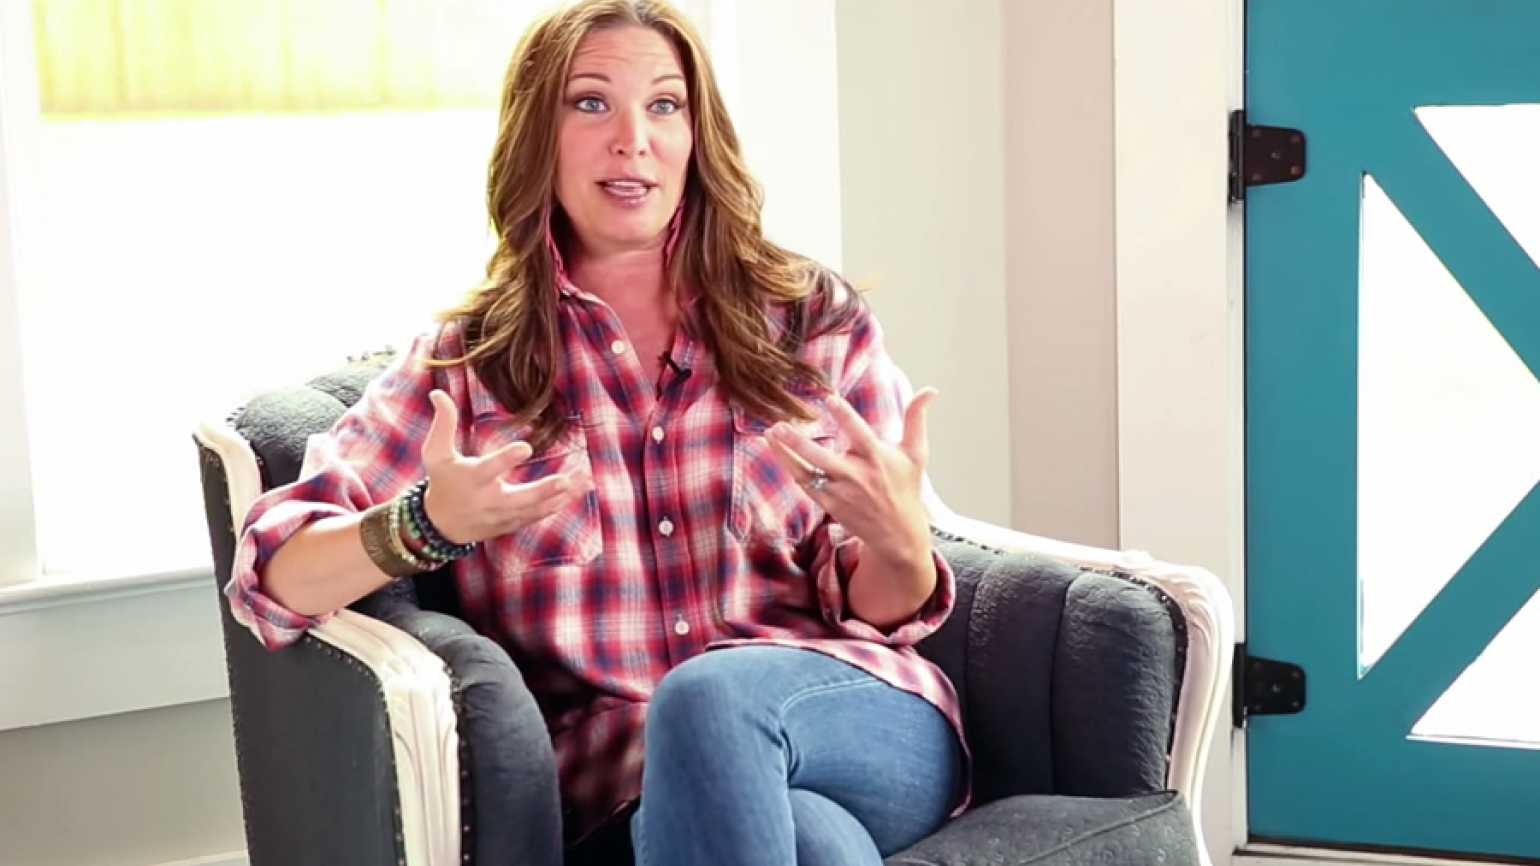 Author and TV personality Jen Hatmaker shares insights on how her faith informs her parenting.